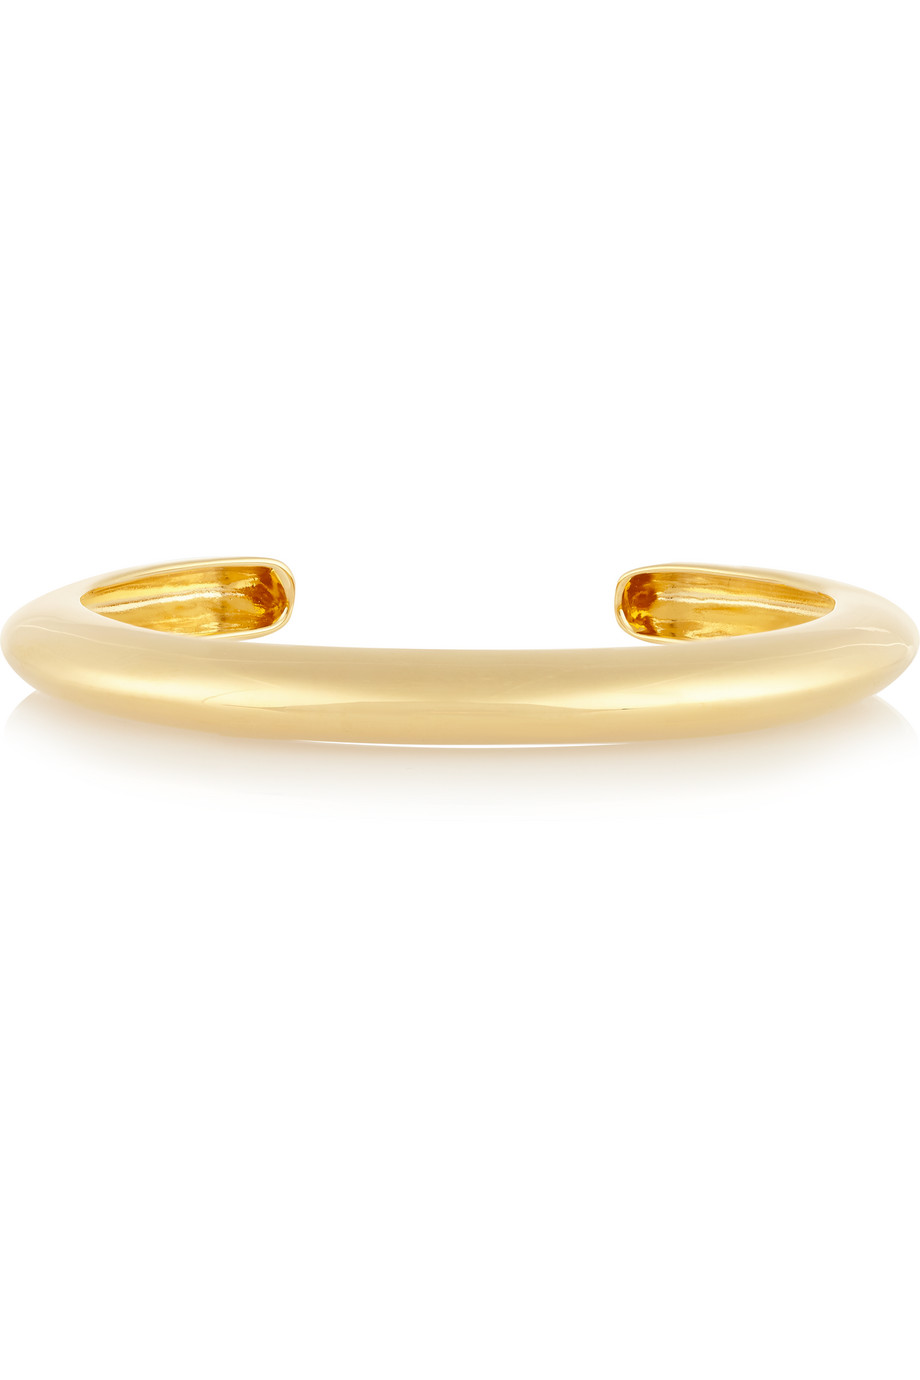 Arme De L'amour Gold-Plated Cuff, Women's